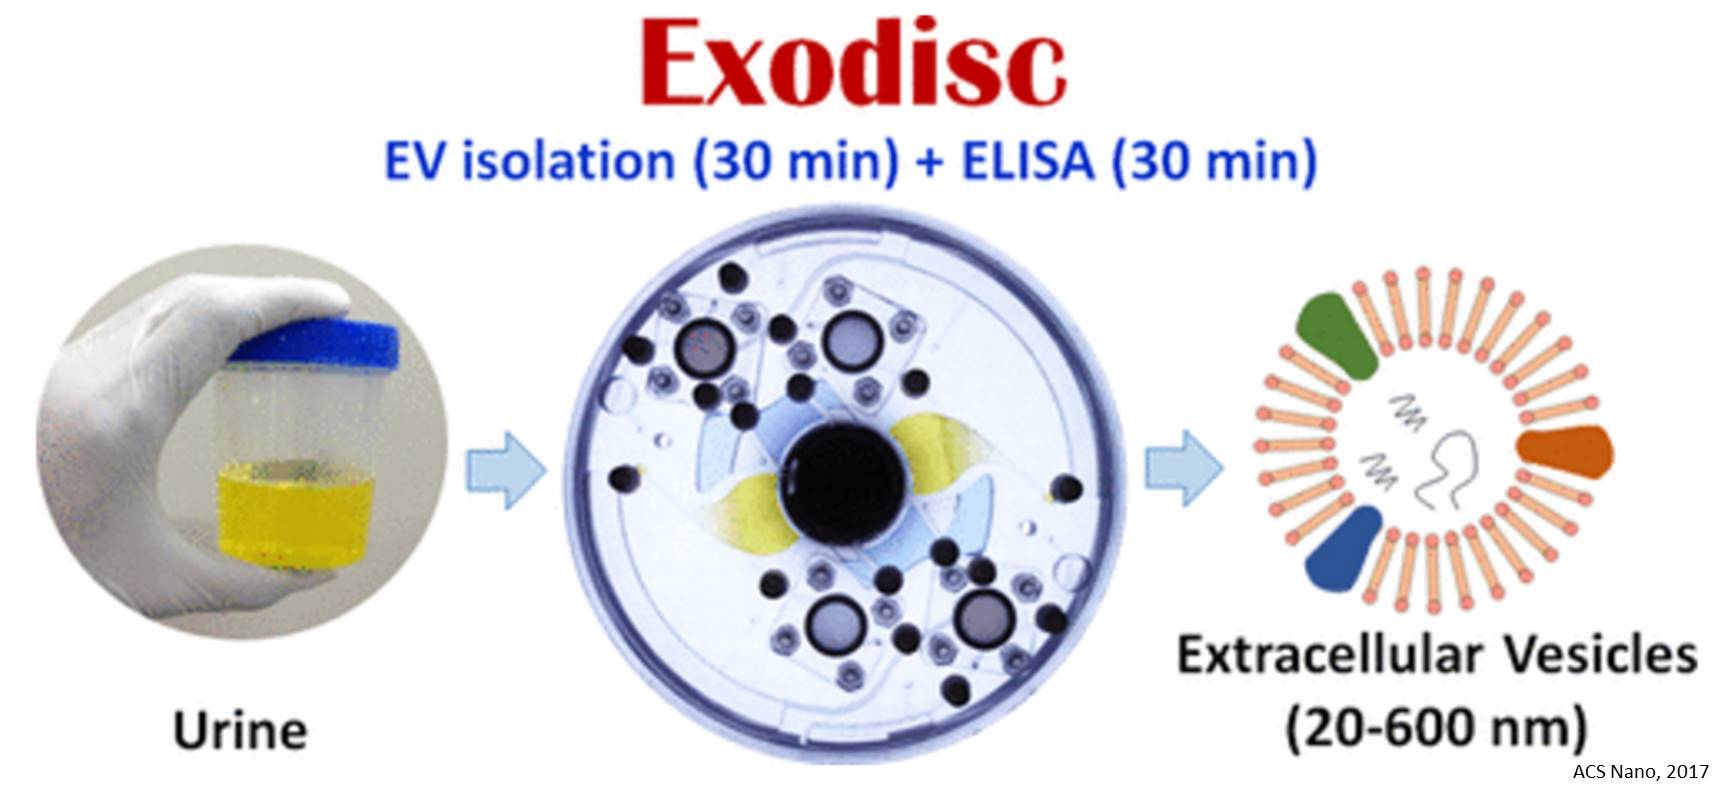 Extracellular vesicle isolation from urine and bladder cancer detection using lab-on-a-disc platform